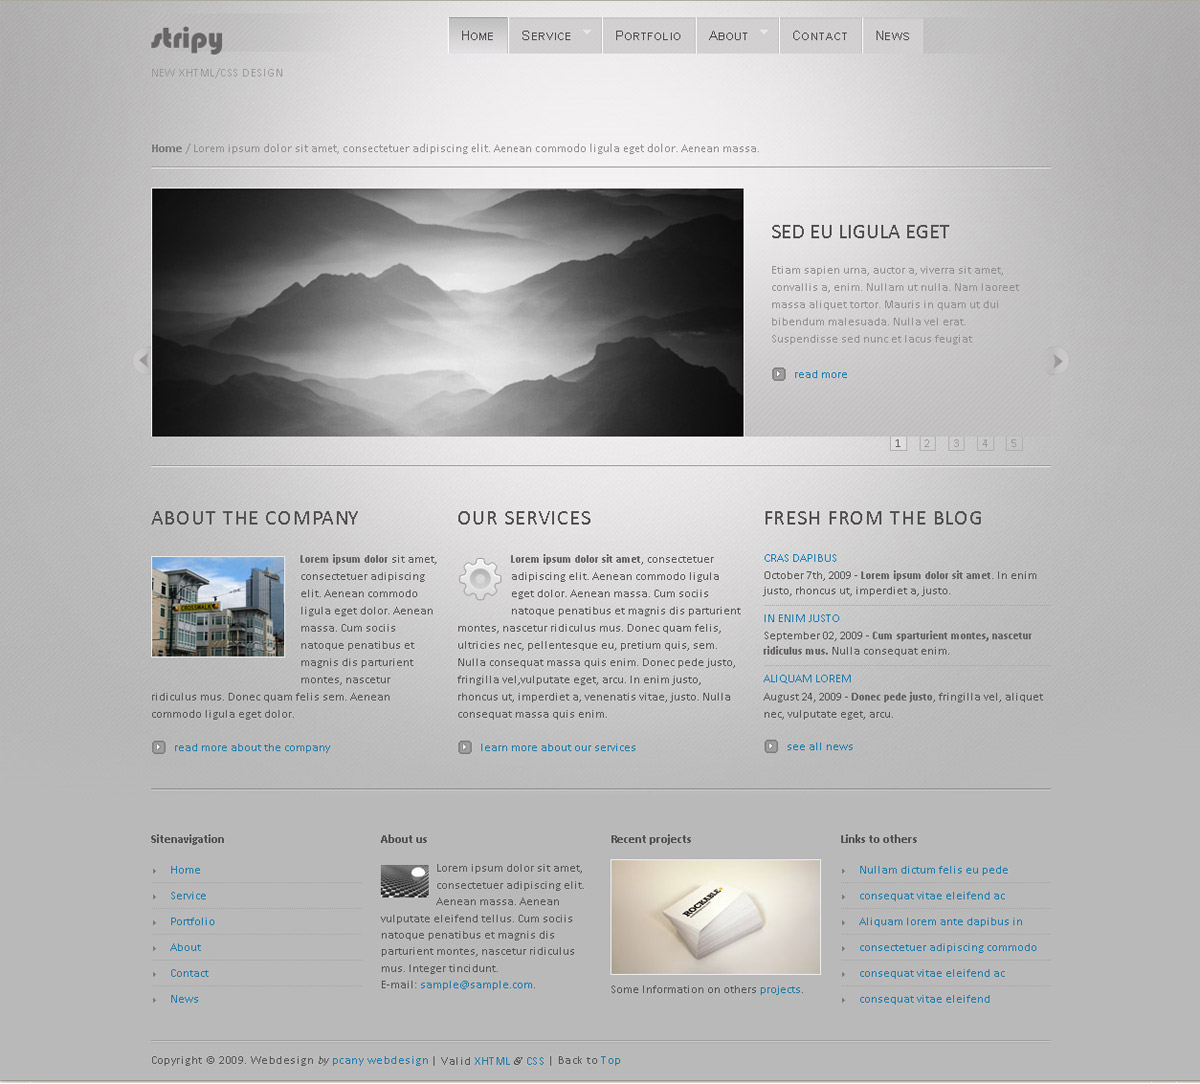 stripy -   The homepage of the HTML template files.